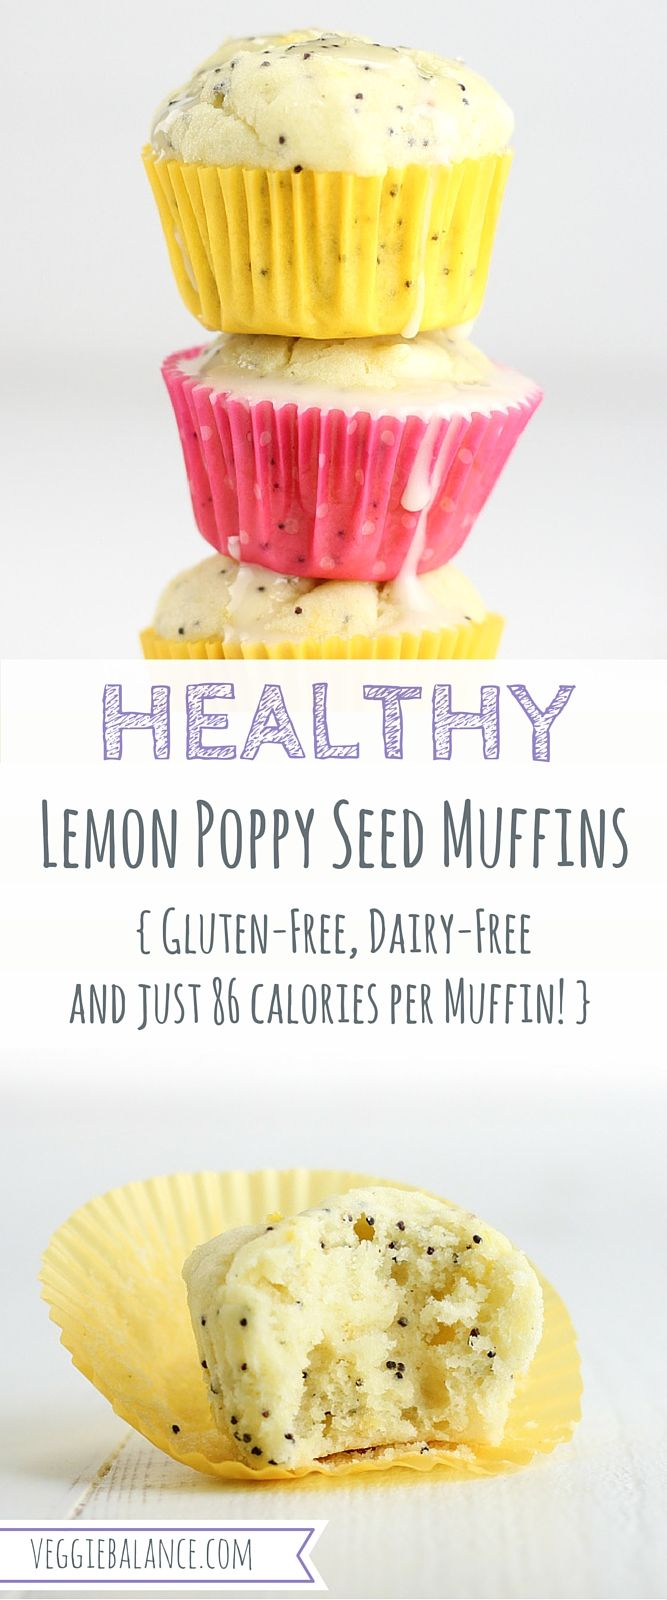 Healthy Lemon Poppy Seed Muffins recipe is super moist made with natural ingredients, gluten-free, dairy-free and low-sugar. Just 86 calories per muffin!